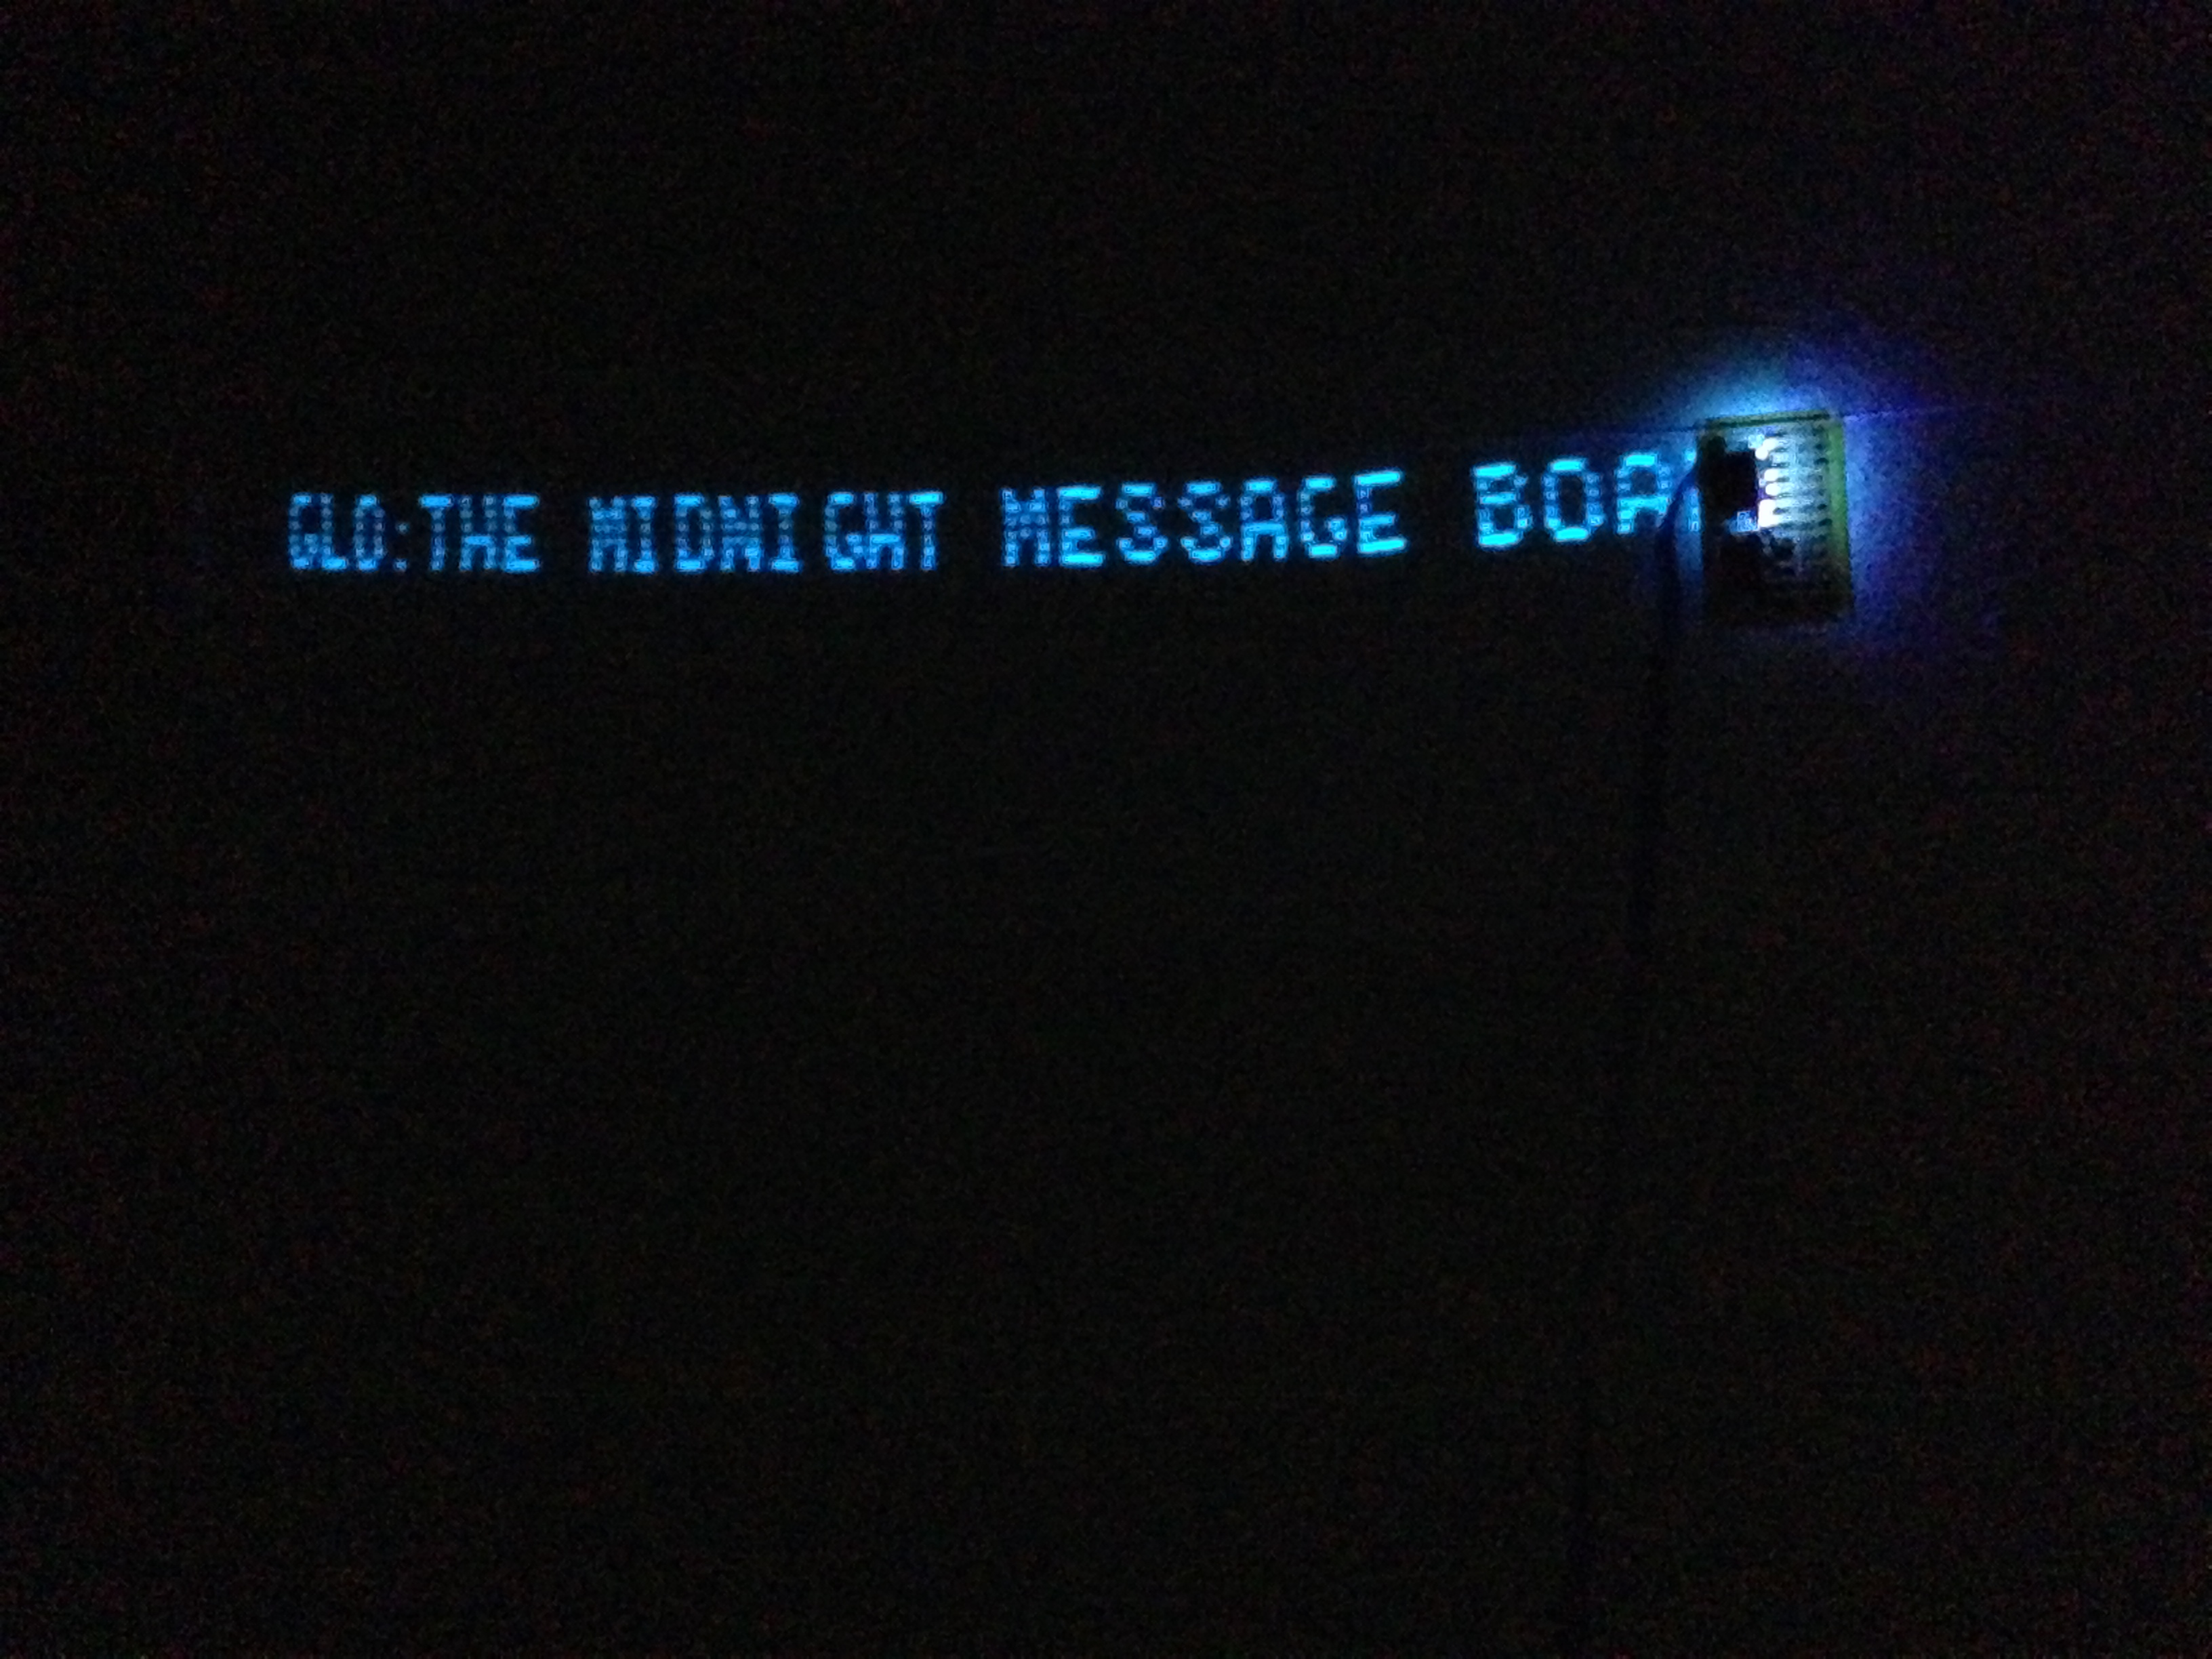 GLO: The Midnight Message Board and RSS Display